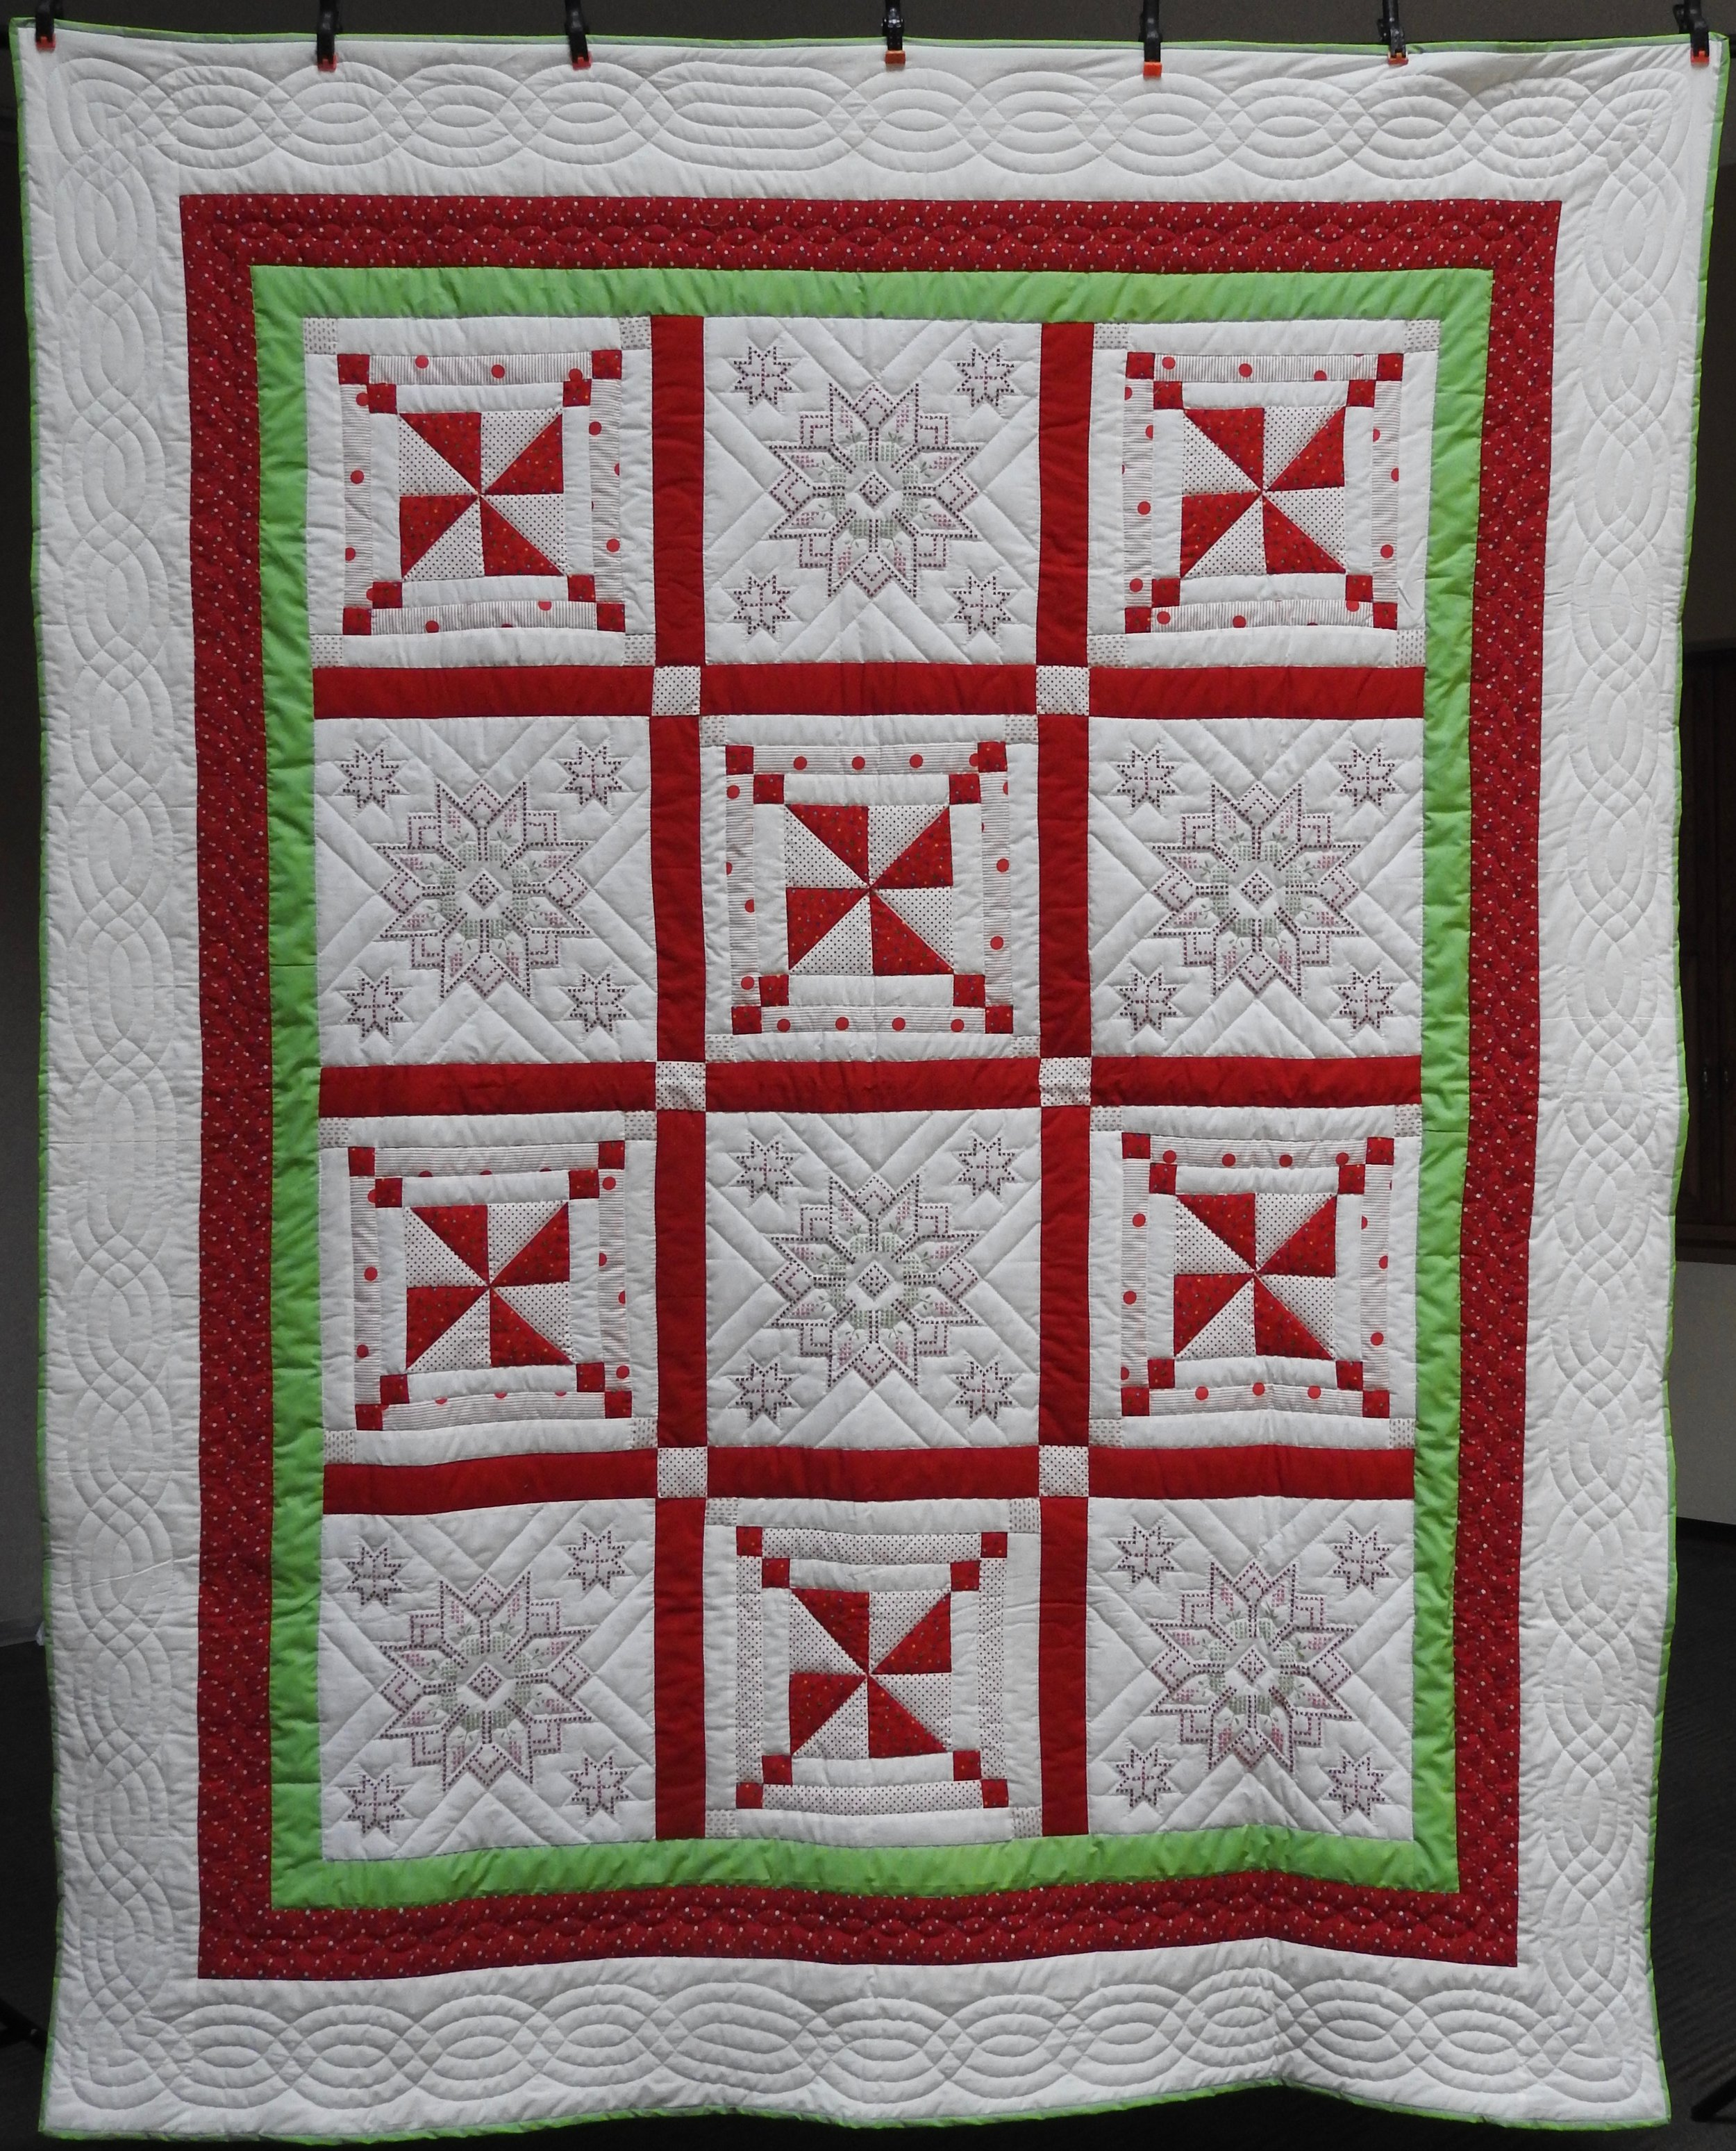 Stars & Pinwheels, Pieced, Hand Embroidered, Hand Quilted, donated Anonymously, 78 x 96""